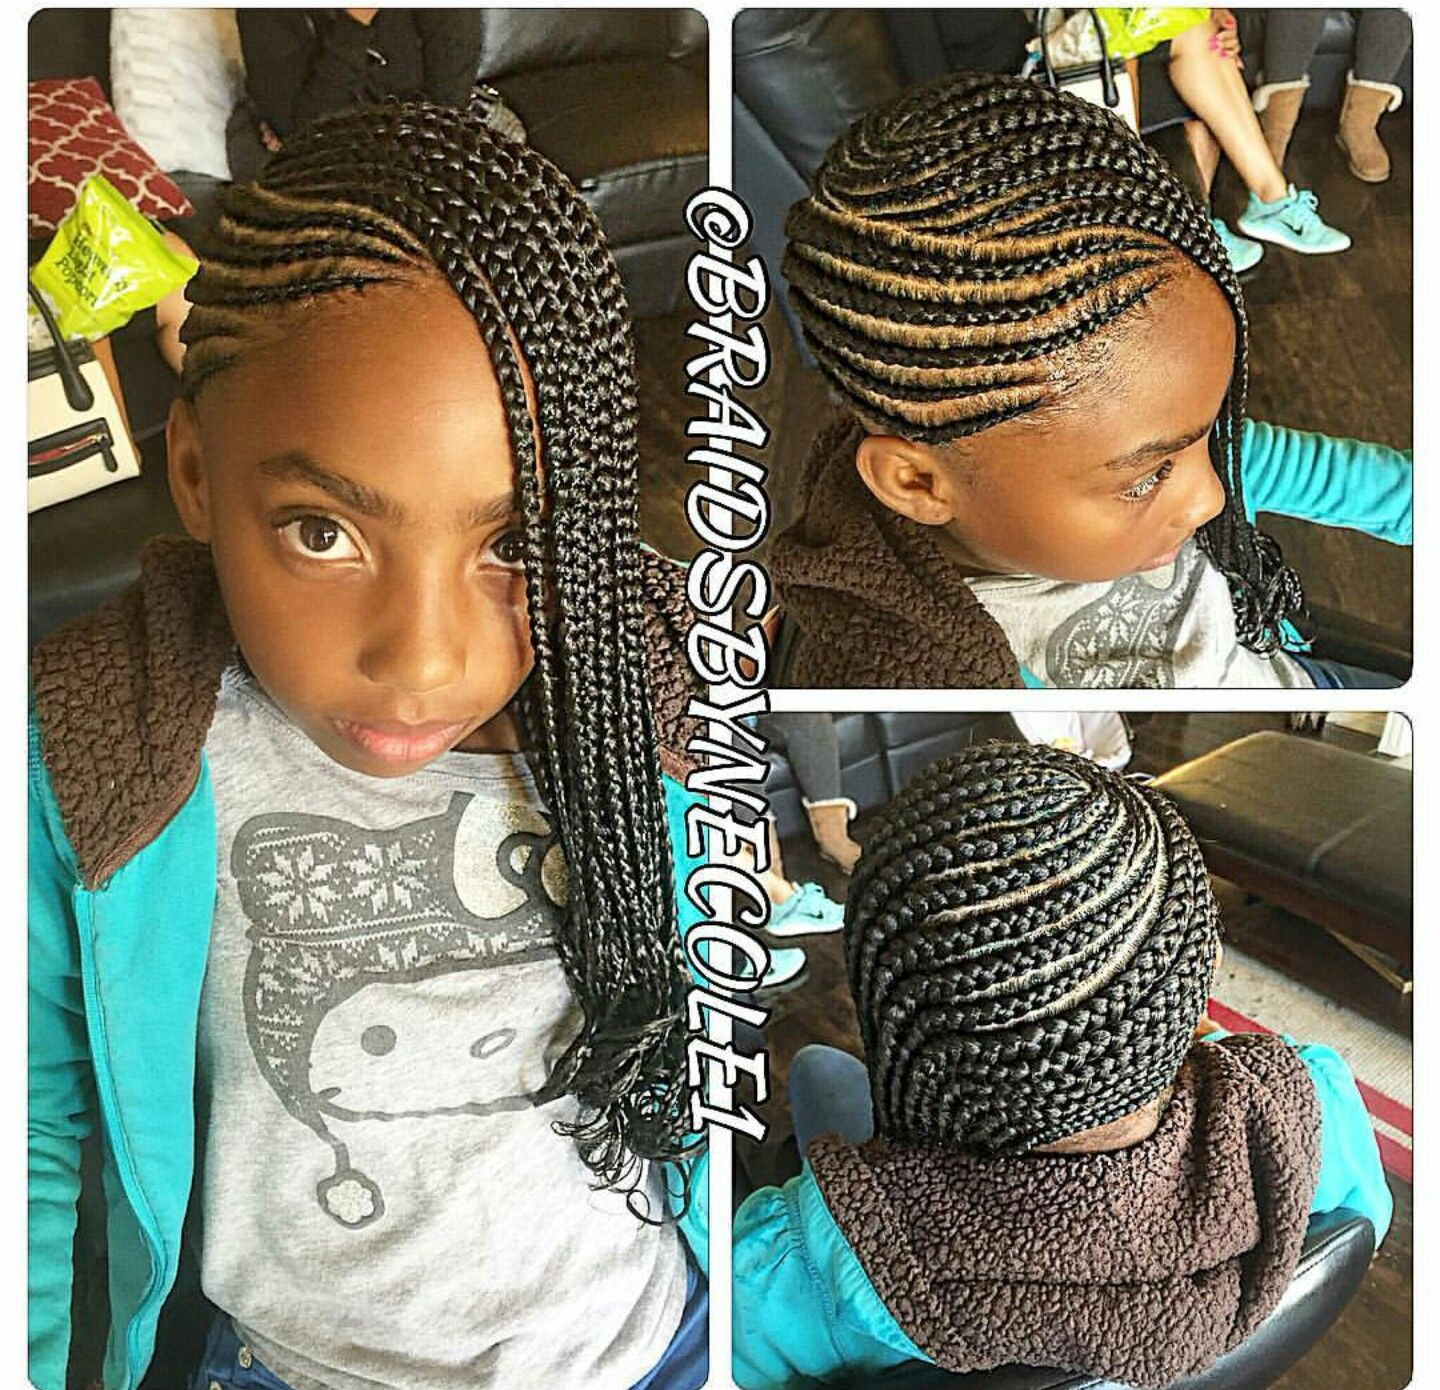 Pin by Maurine McKeown on black hair styles | Kids braided ...